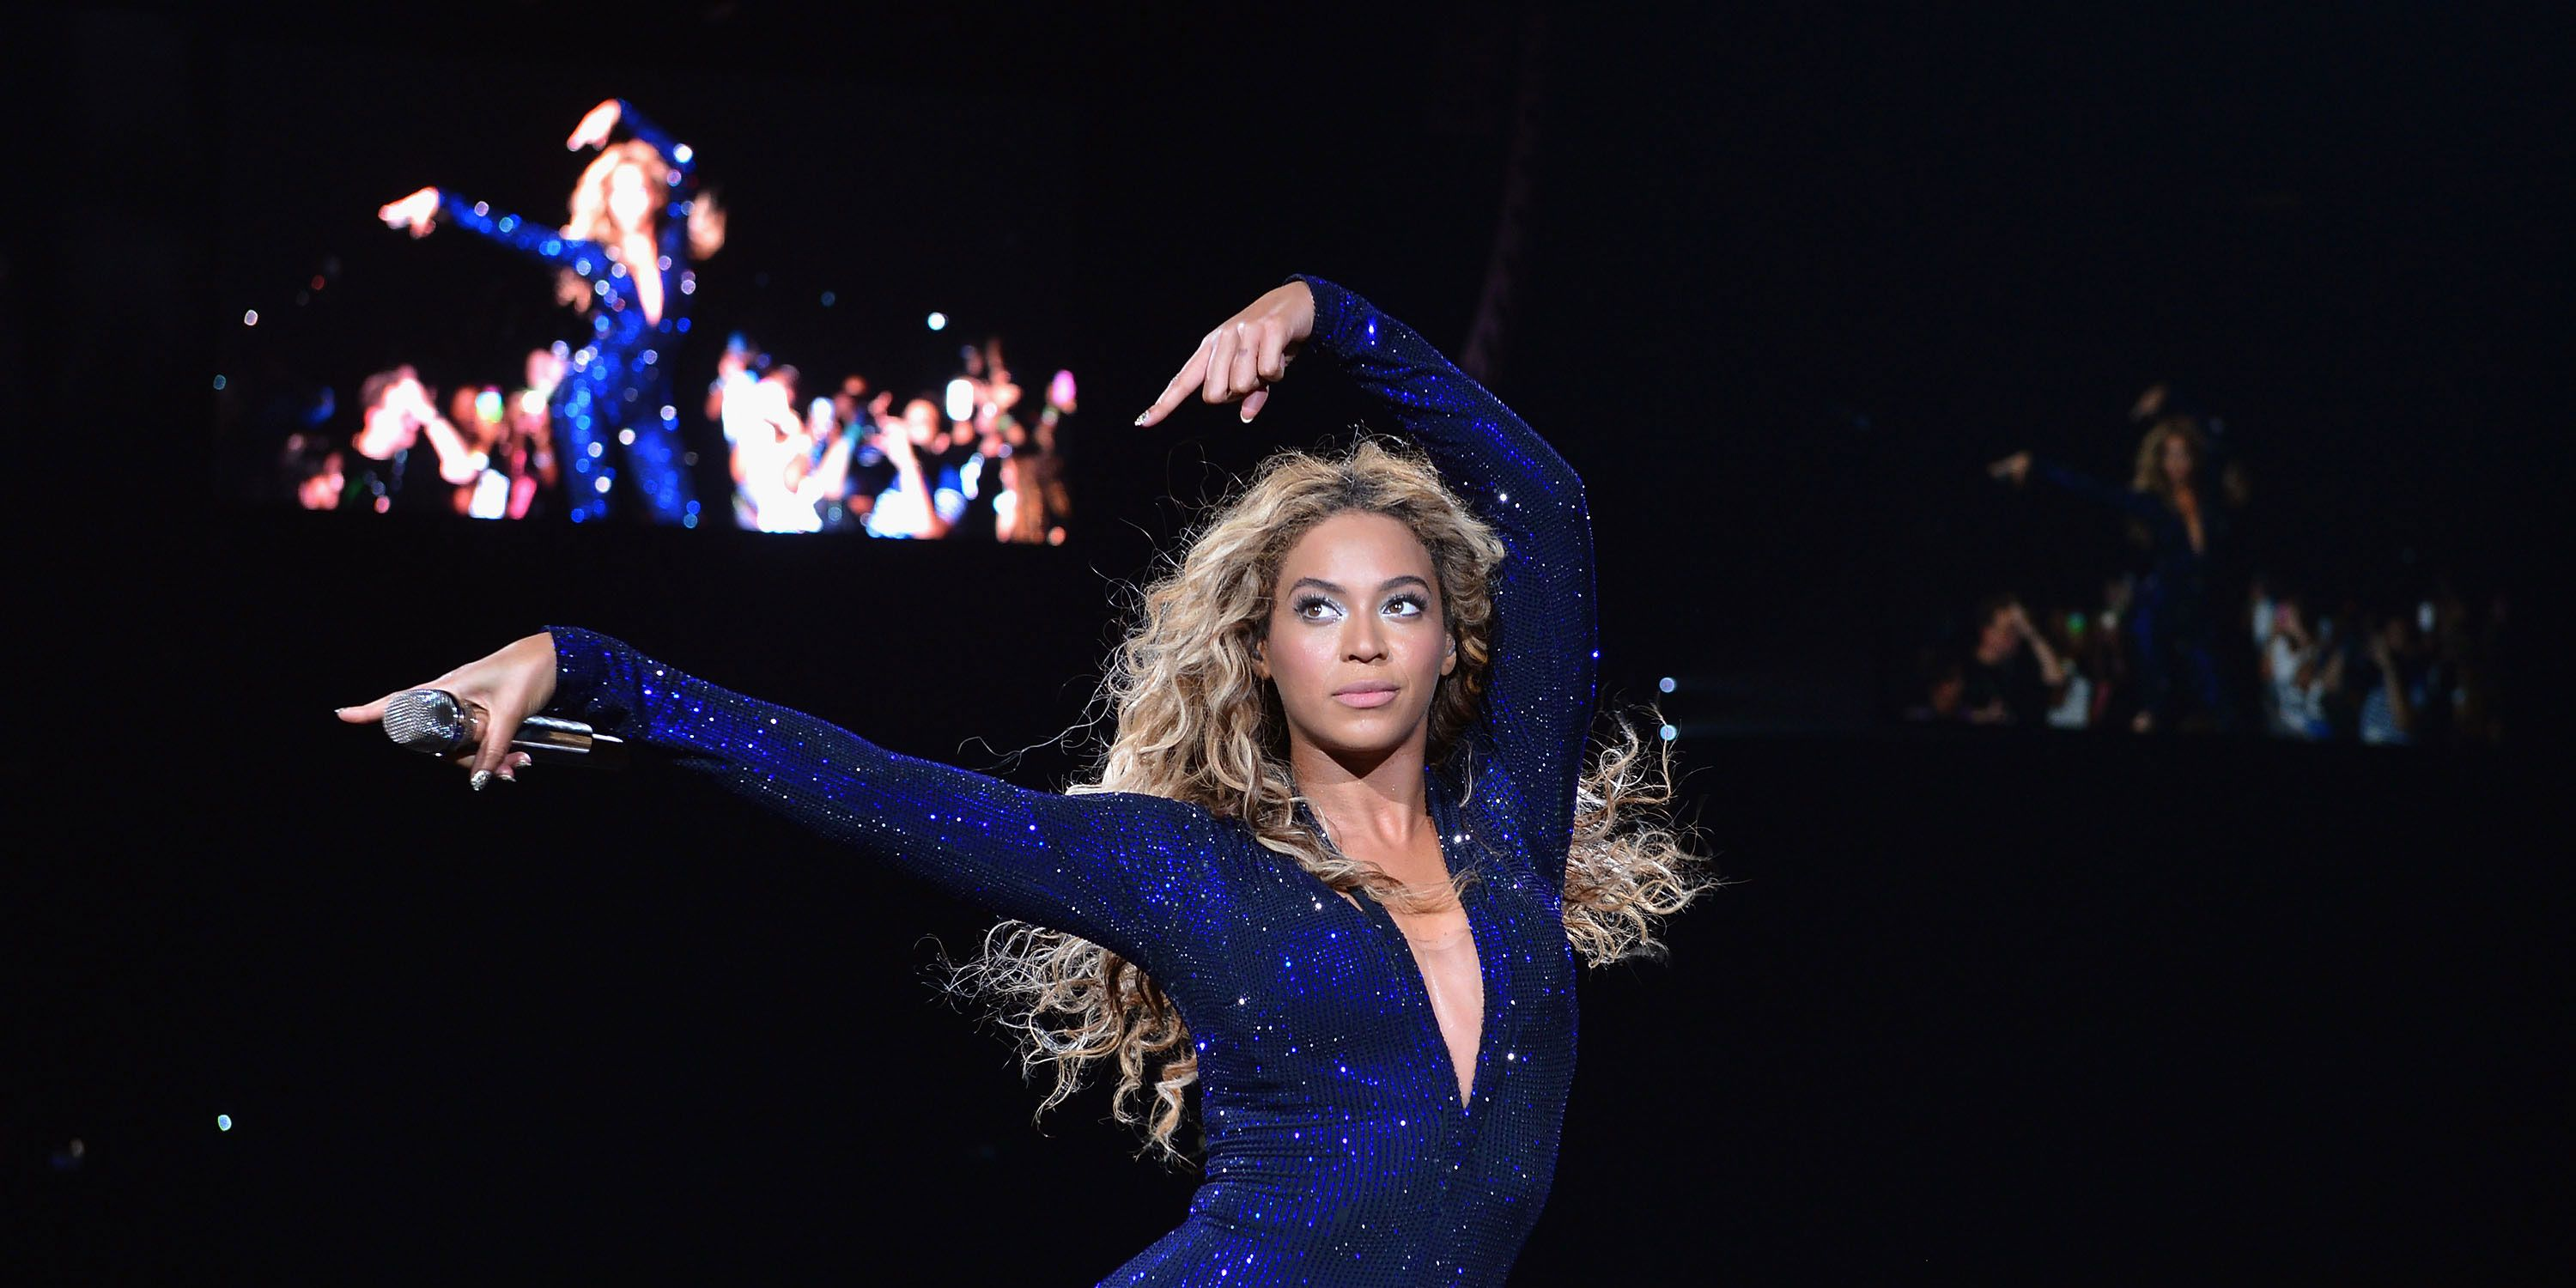 Beyonce performs on stage during 'The Mrs. Carter Show World Tour' at the American Airlines Arena on July 10, 2013